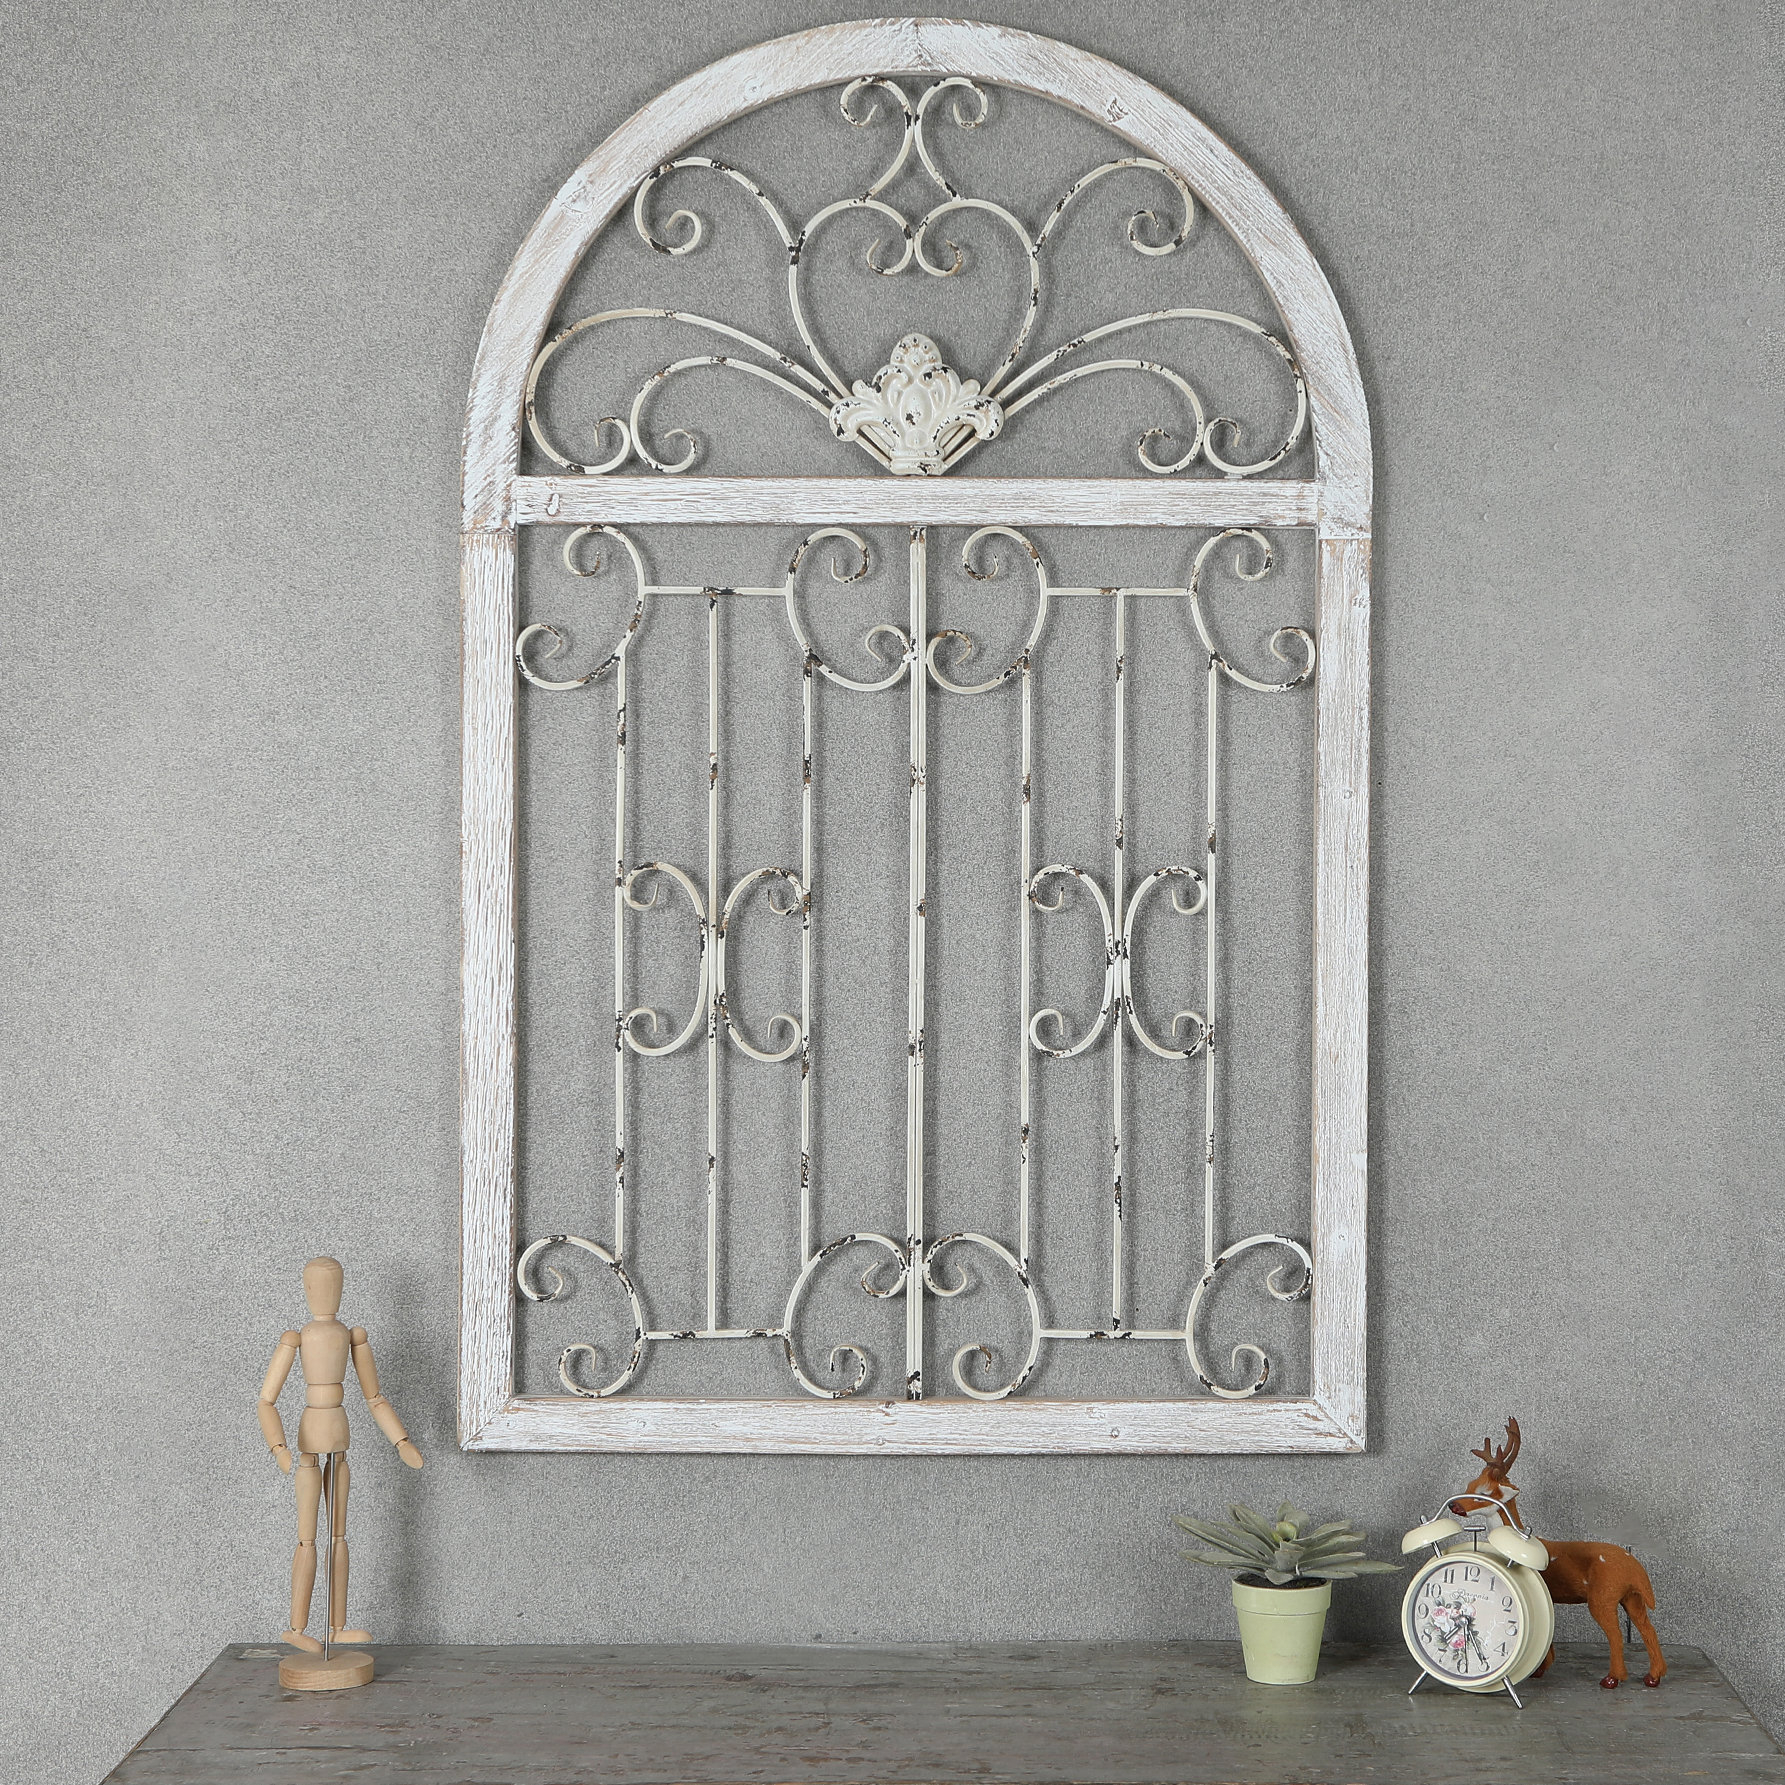 Widely Used Ophelia & Co. Metal Window Scroll Wall Décor & Reviews (Gallery 3 of 20)